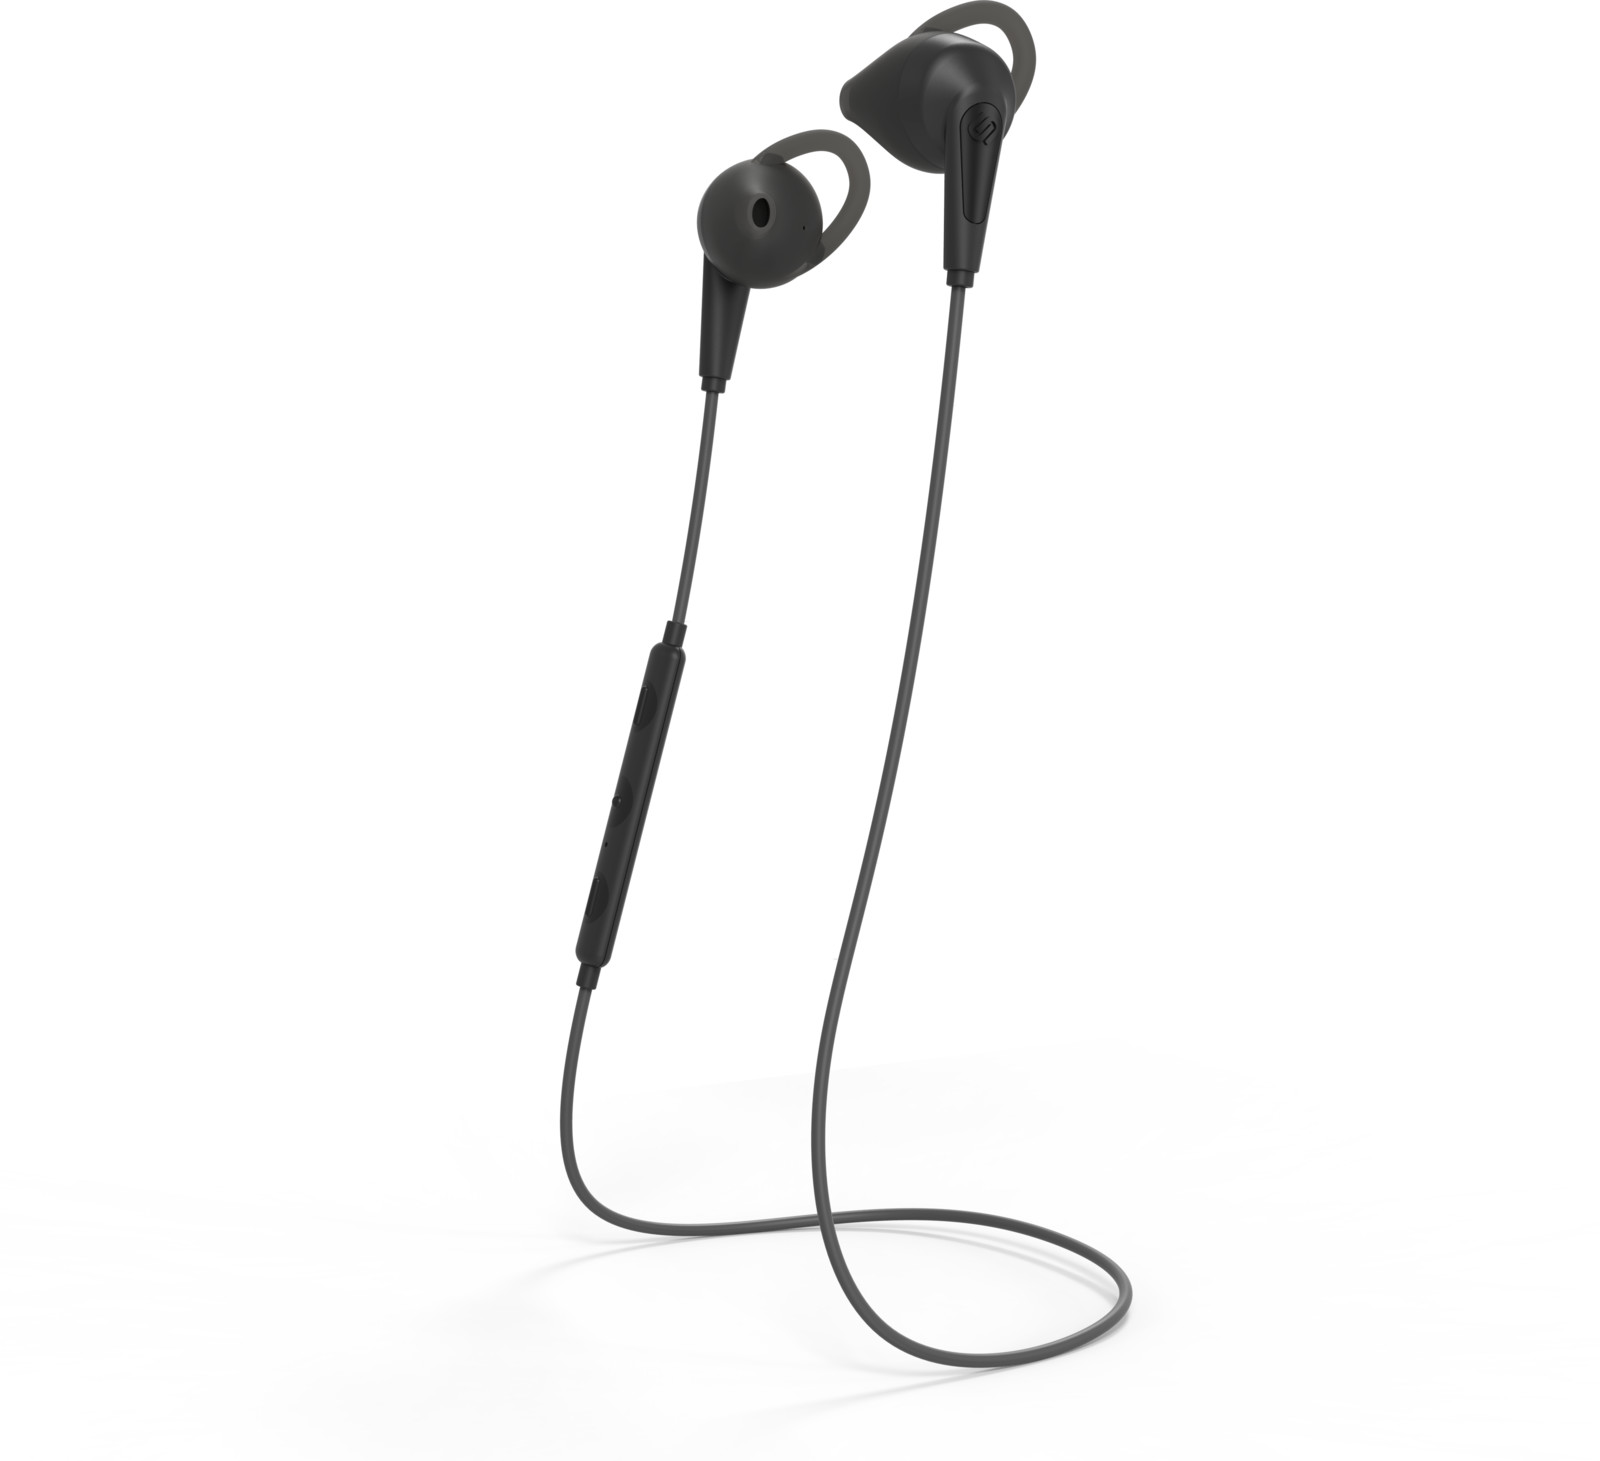 Bluetooth Wired Earphones Stereo In Ear Headphones With